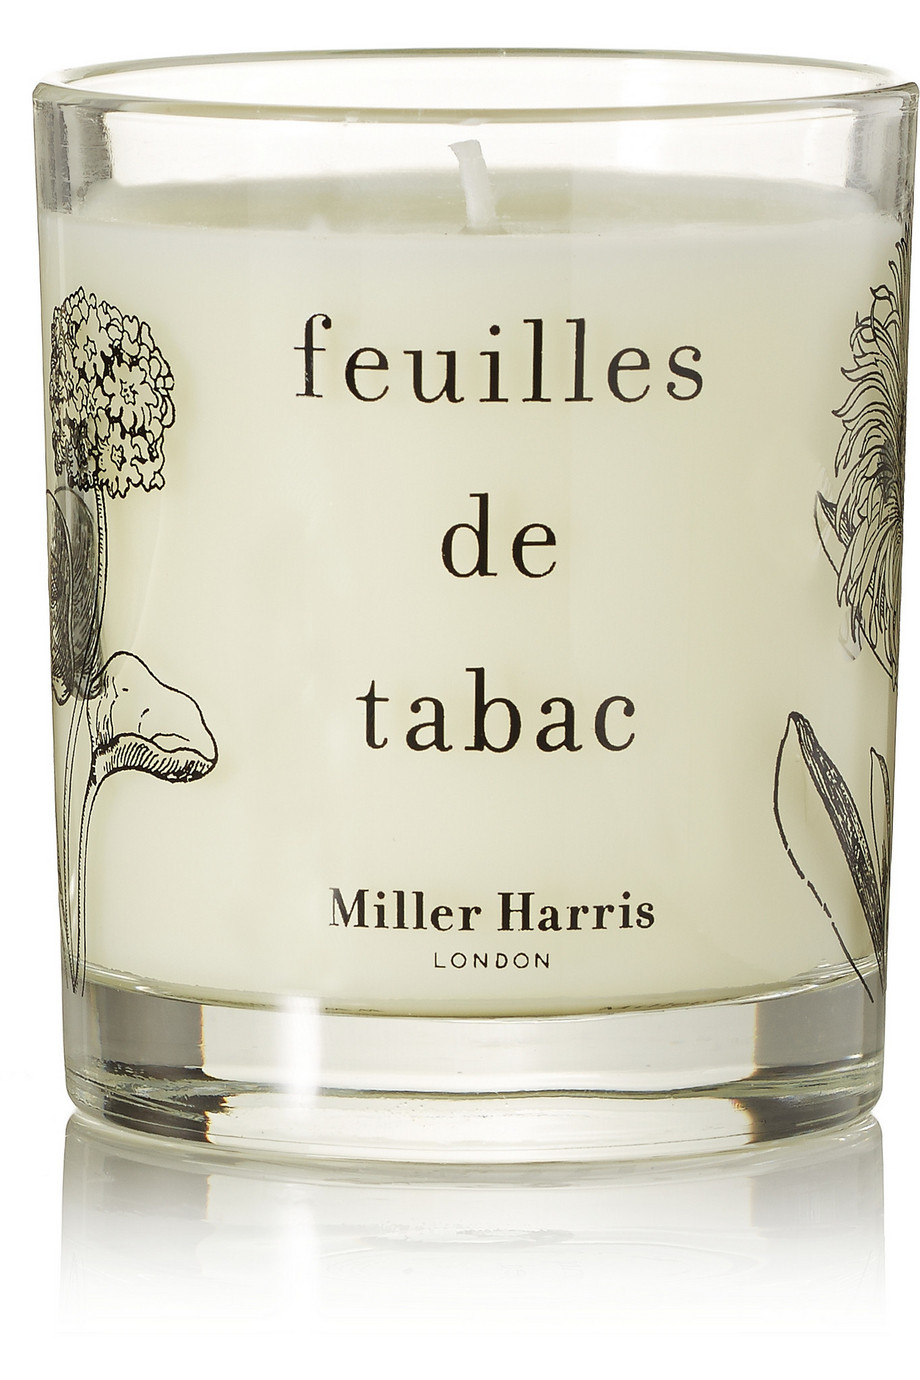 Feuilles De Tabac Scented Candle - Tobacco Leaf & Pimento Berries, 185g